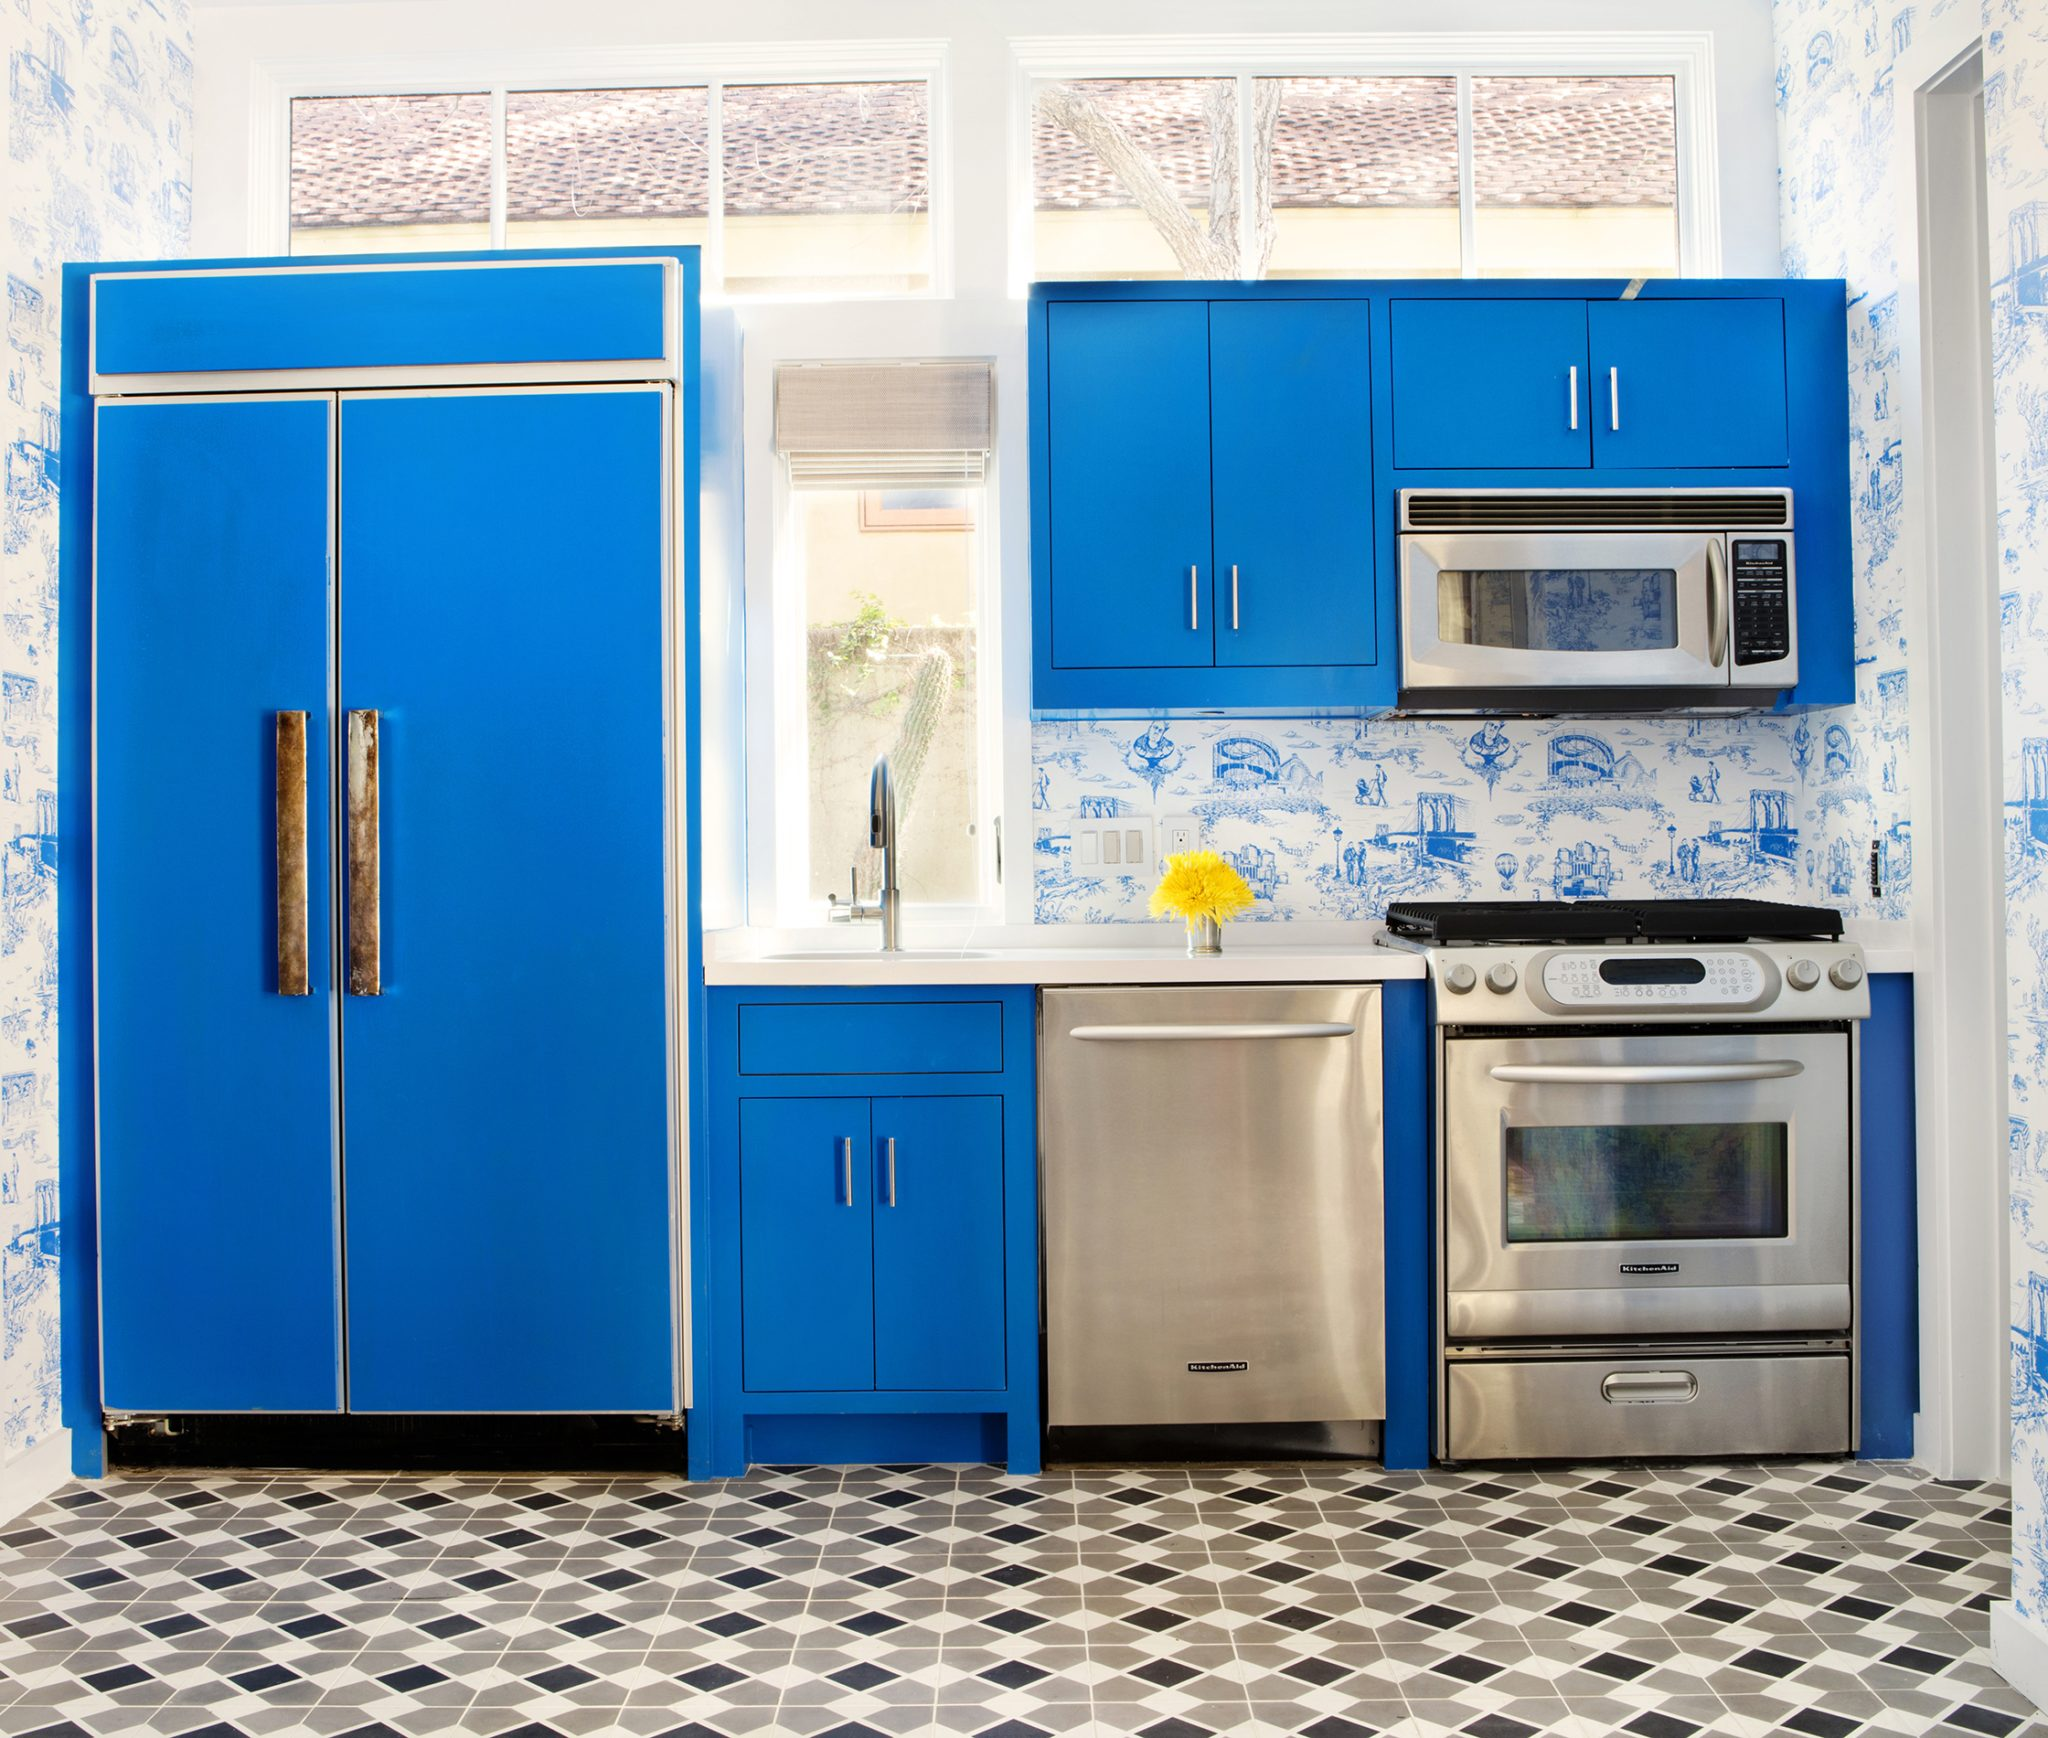 Pool house kitchen with blue gloss cabinetry, cement tile and toile wallpaper by Sarah Wittenbraker Interiors